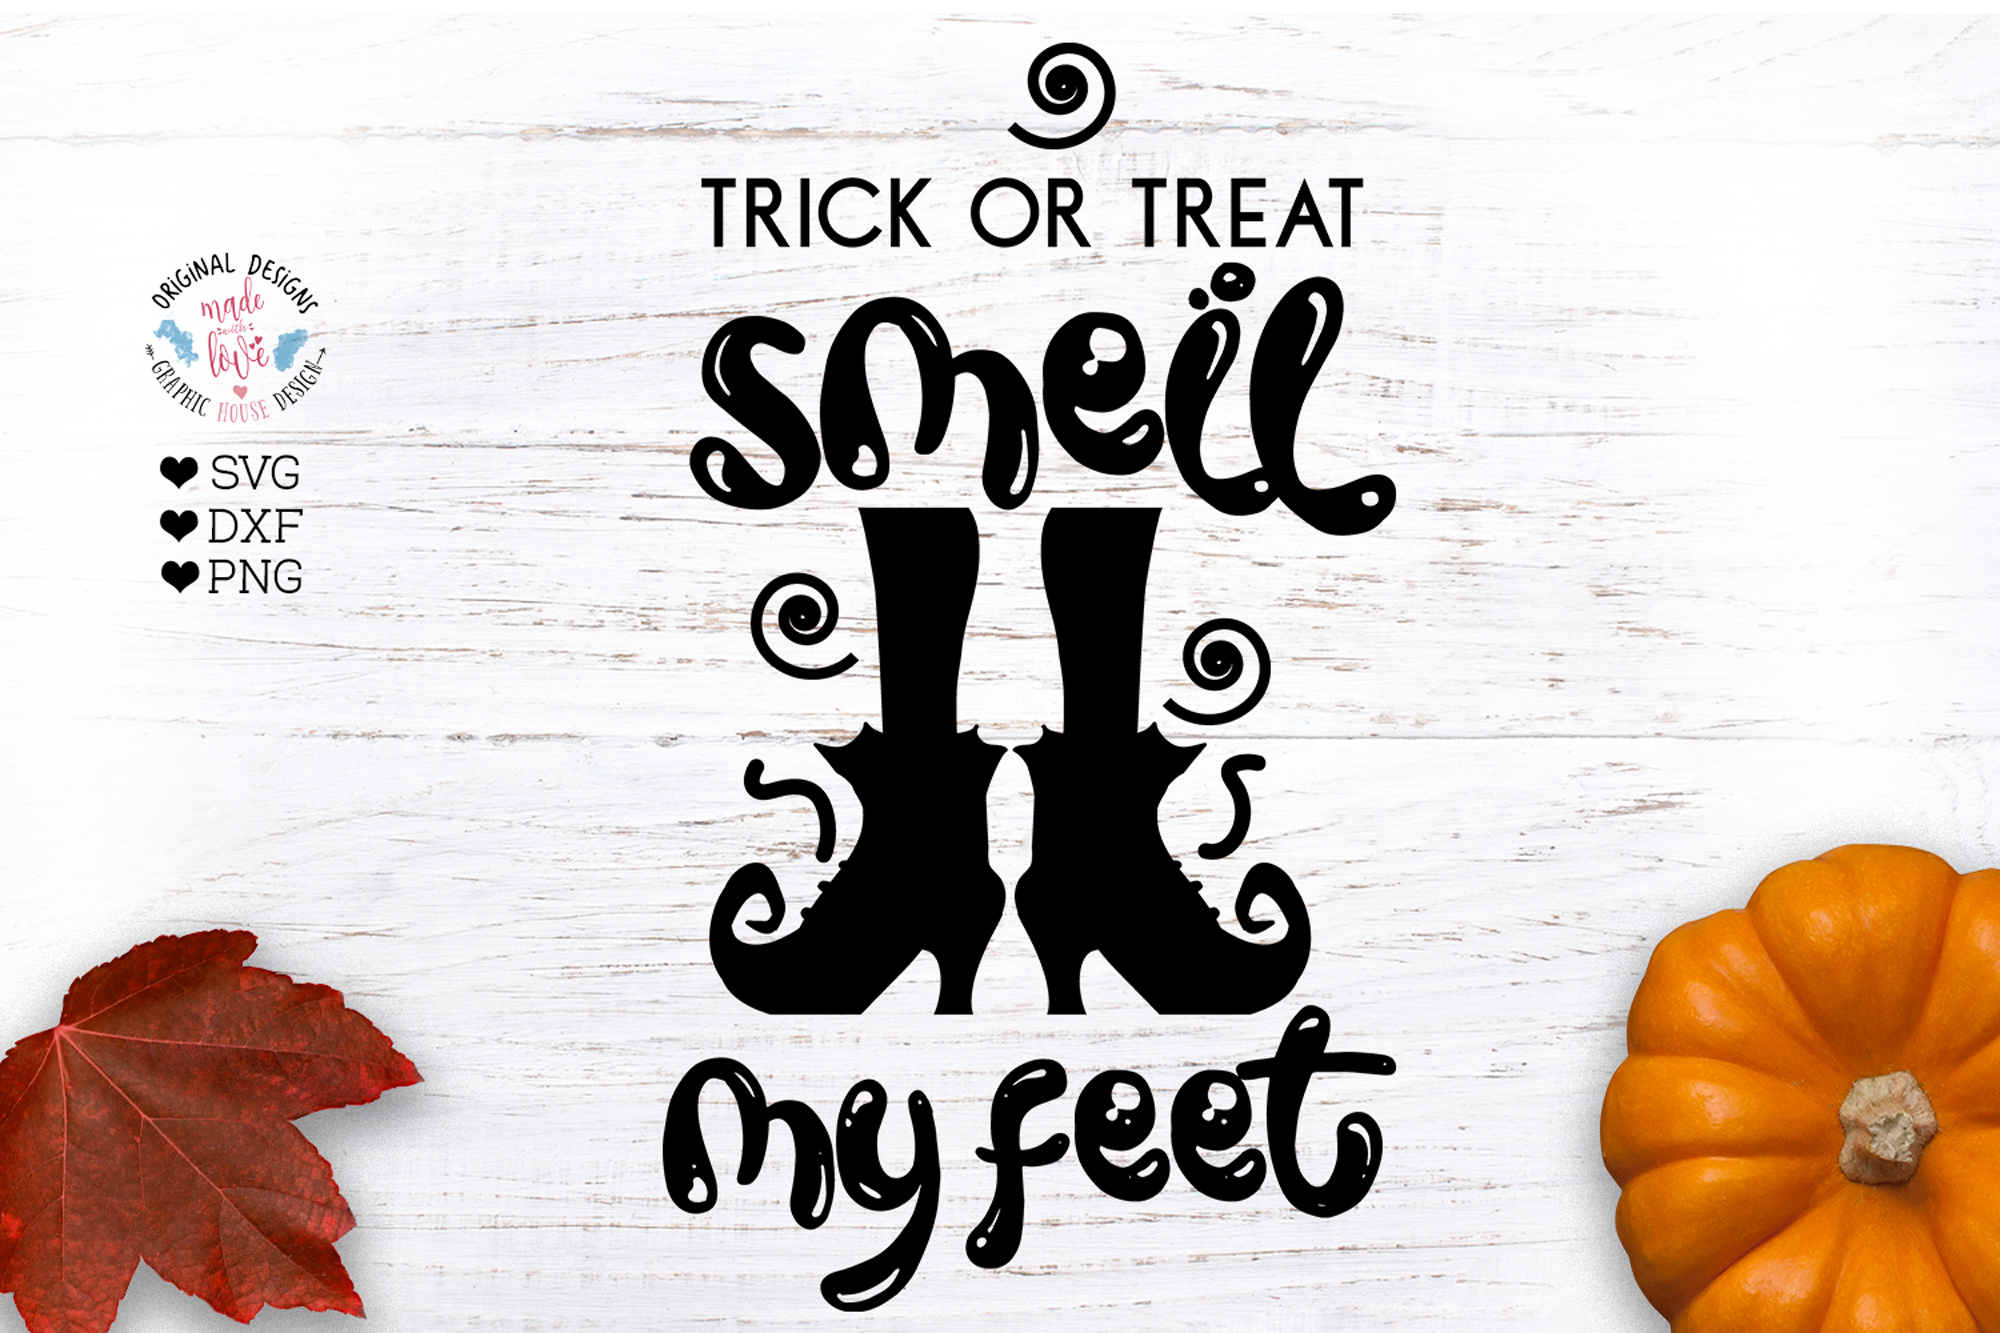 Trick or Treat Smell My Feet - Halloween Cut File example image 1